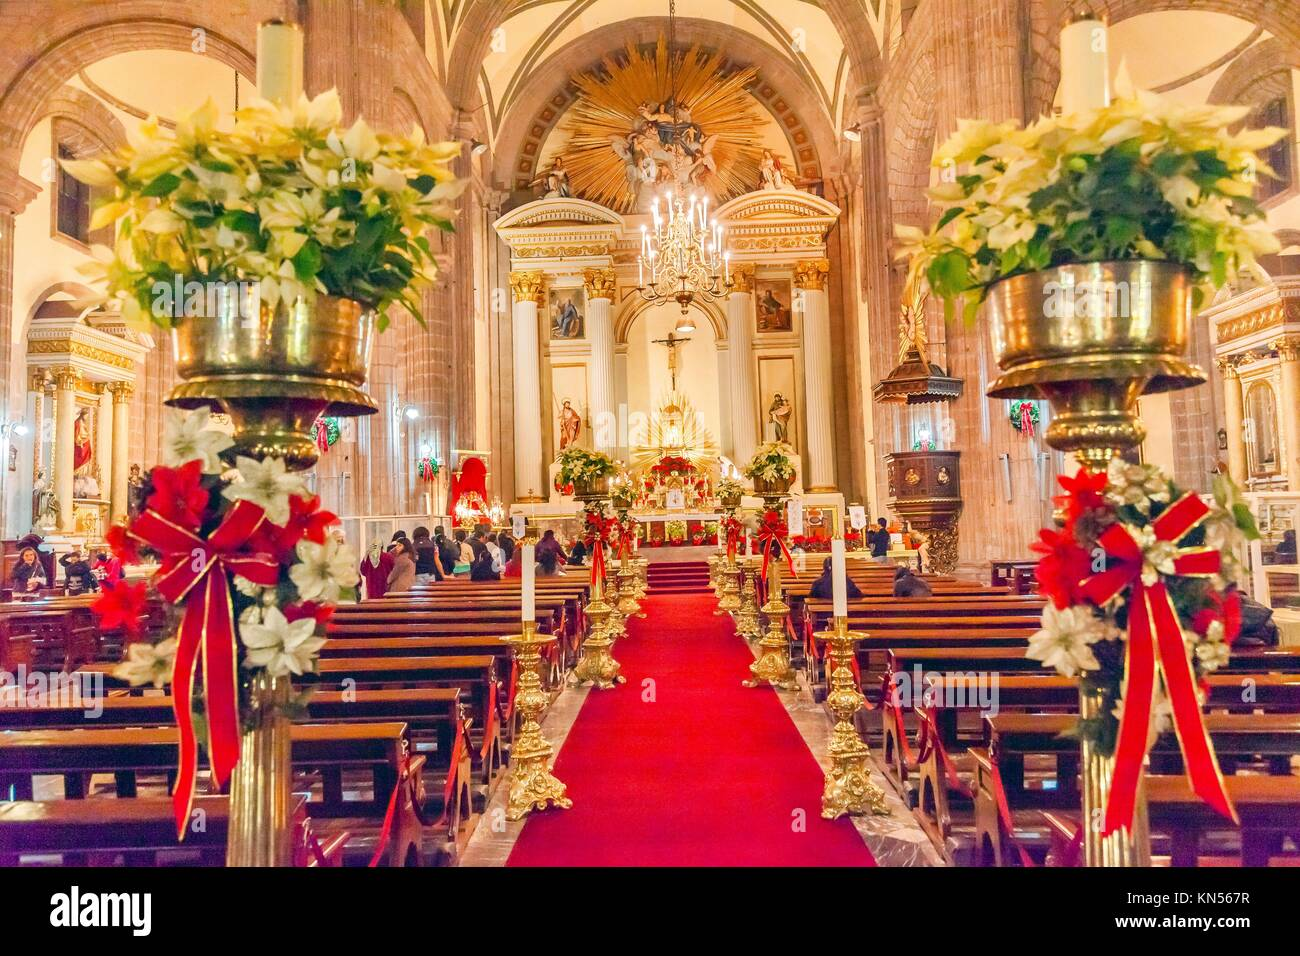 Christmas Church Services Near Me 2021 Christmas Church Service High Resolution Stock Photography And Images Alamy